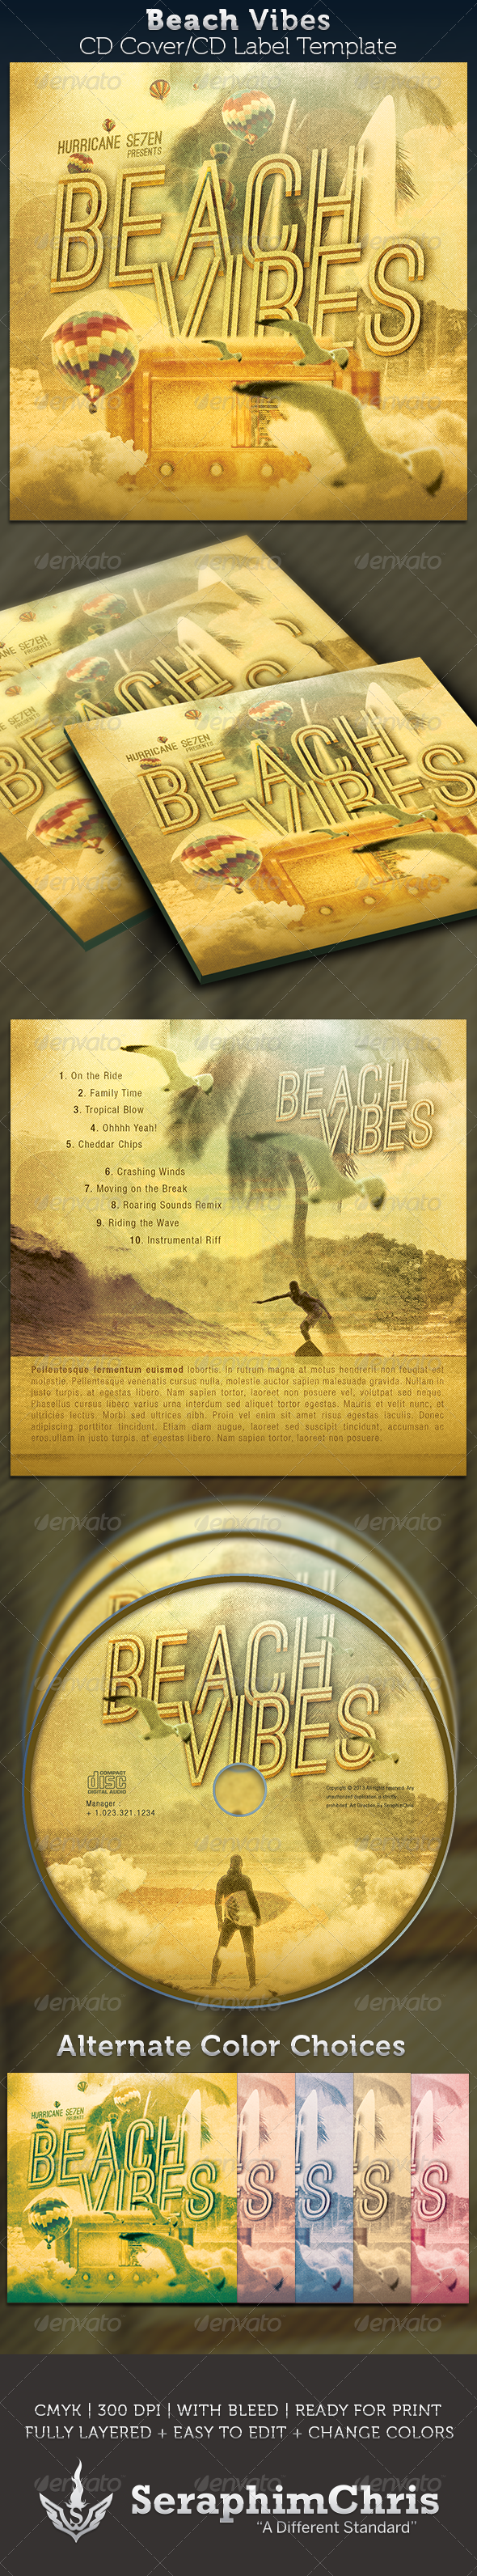 GraphicRiver Beach Vibes CD Cover Artwork Template 3905912